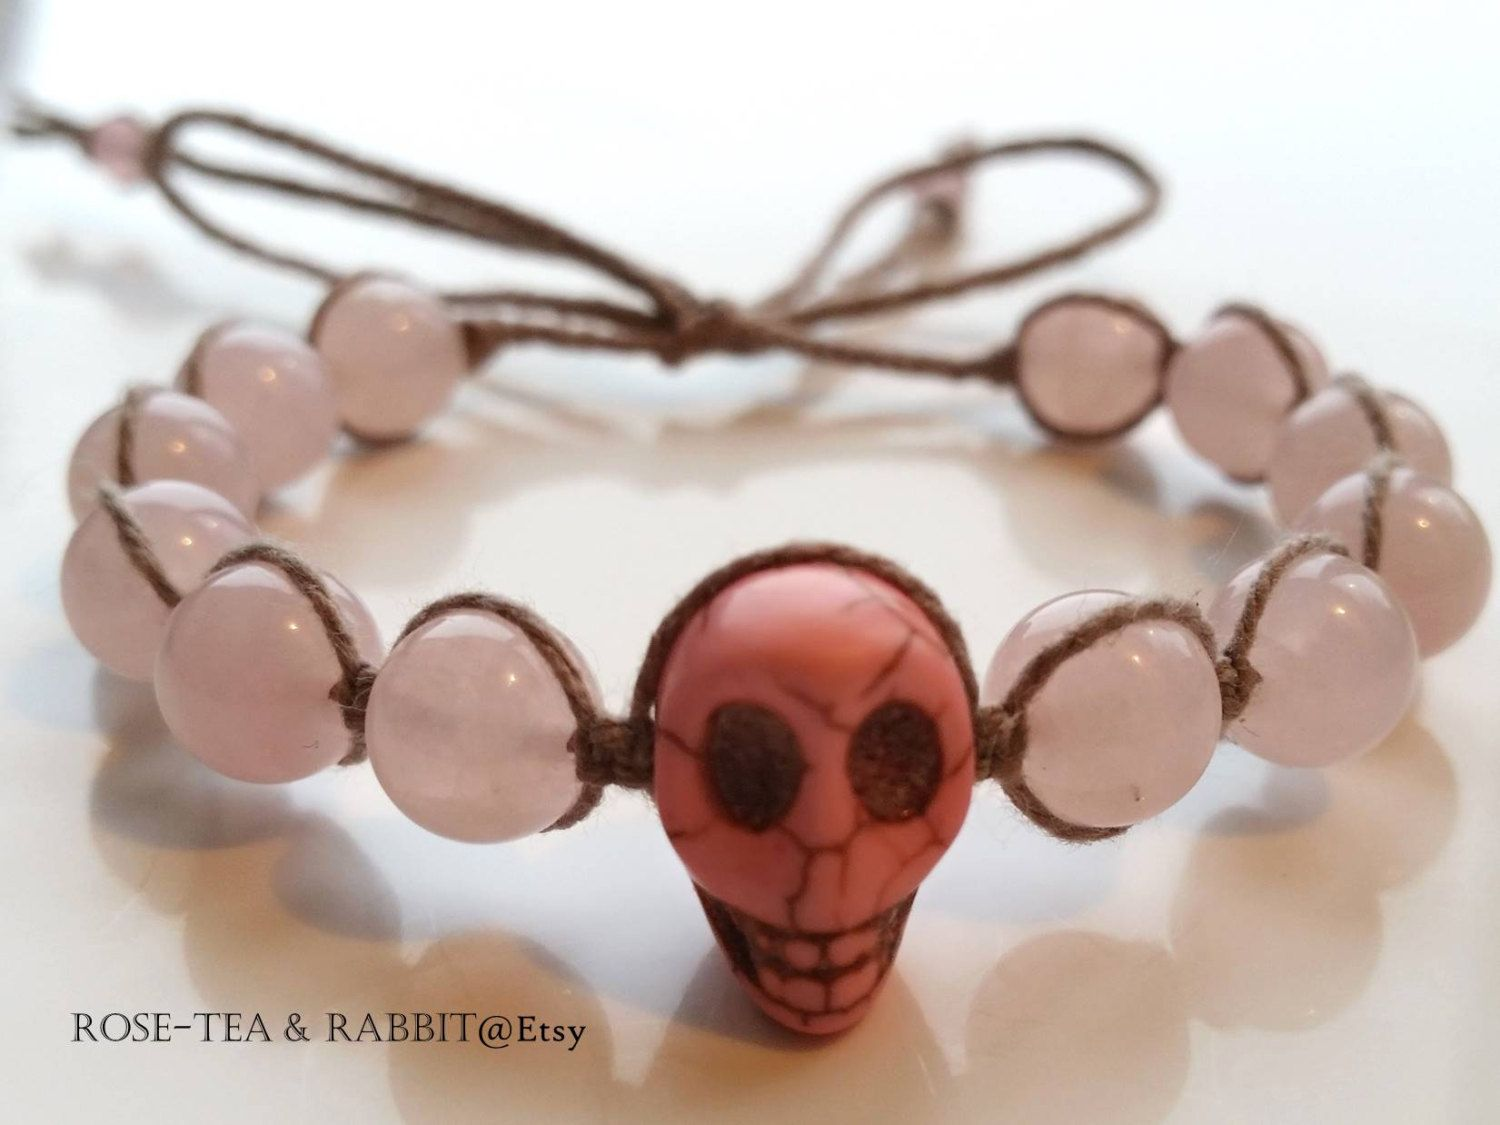 Woven Stacking Bracelet - Pink Turquoise Skull Detail - Semi-Precious Rose Quartz - Adjustable Tie Closure - Cute  - Wear Alone or as a Set by RoseTeaAndRabbit on Etsy